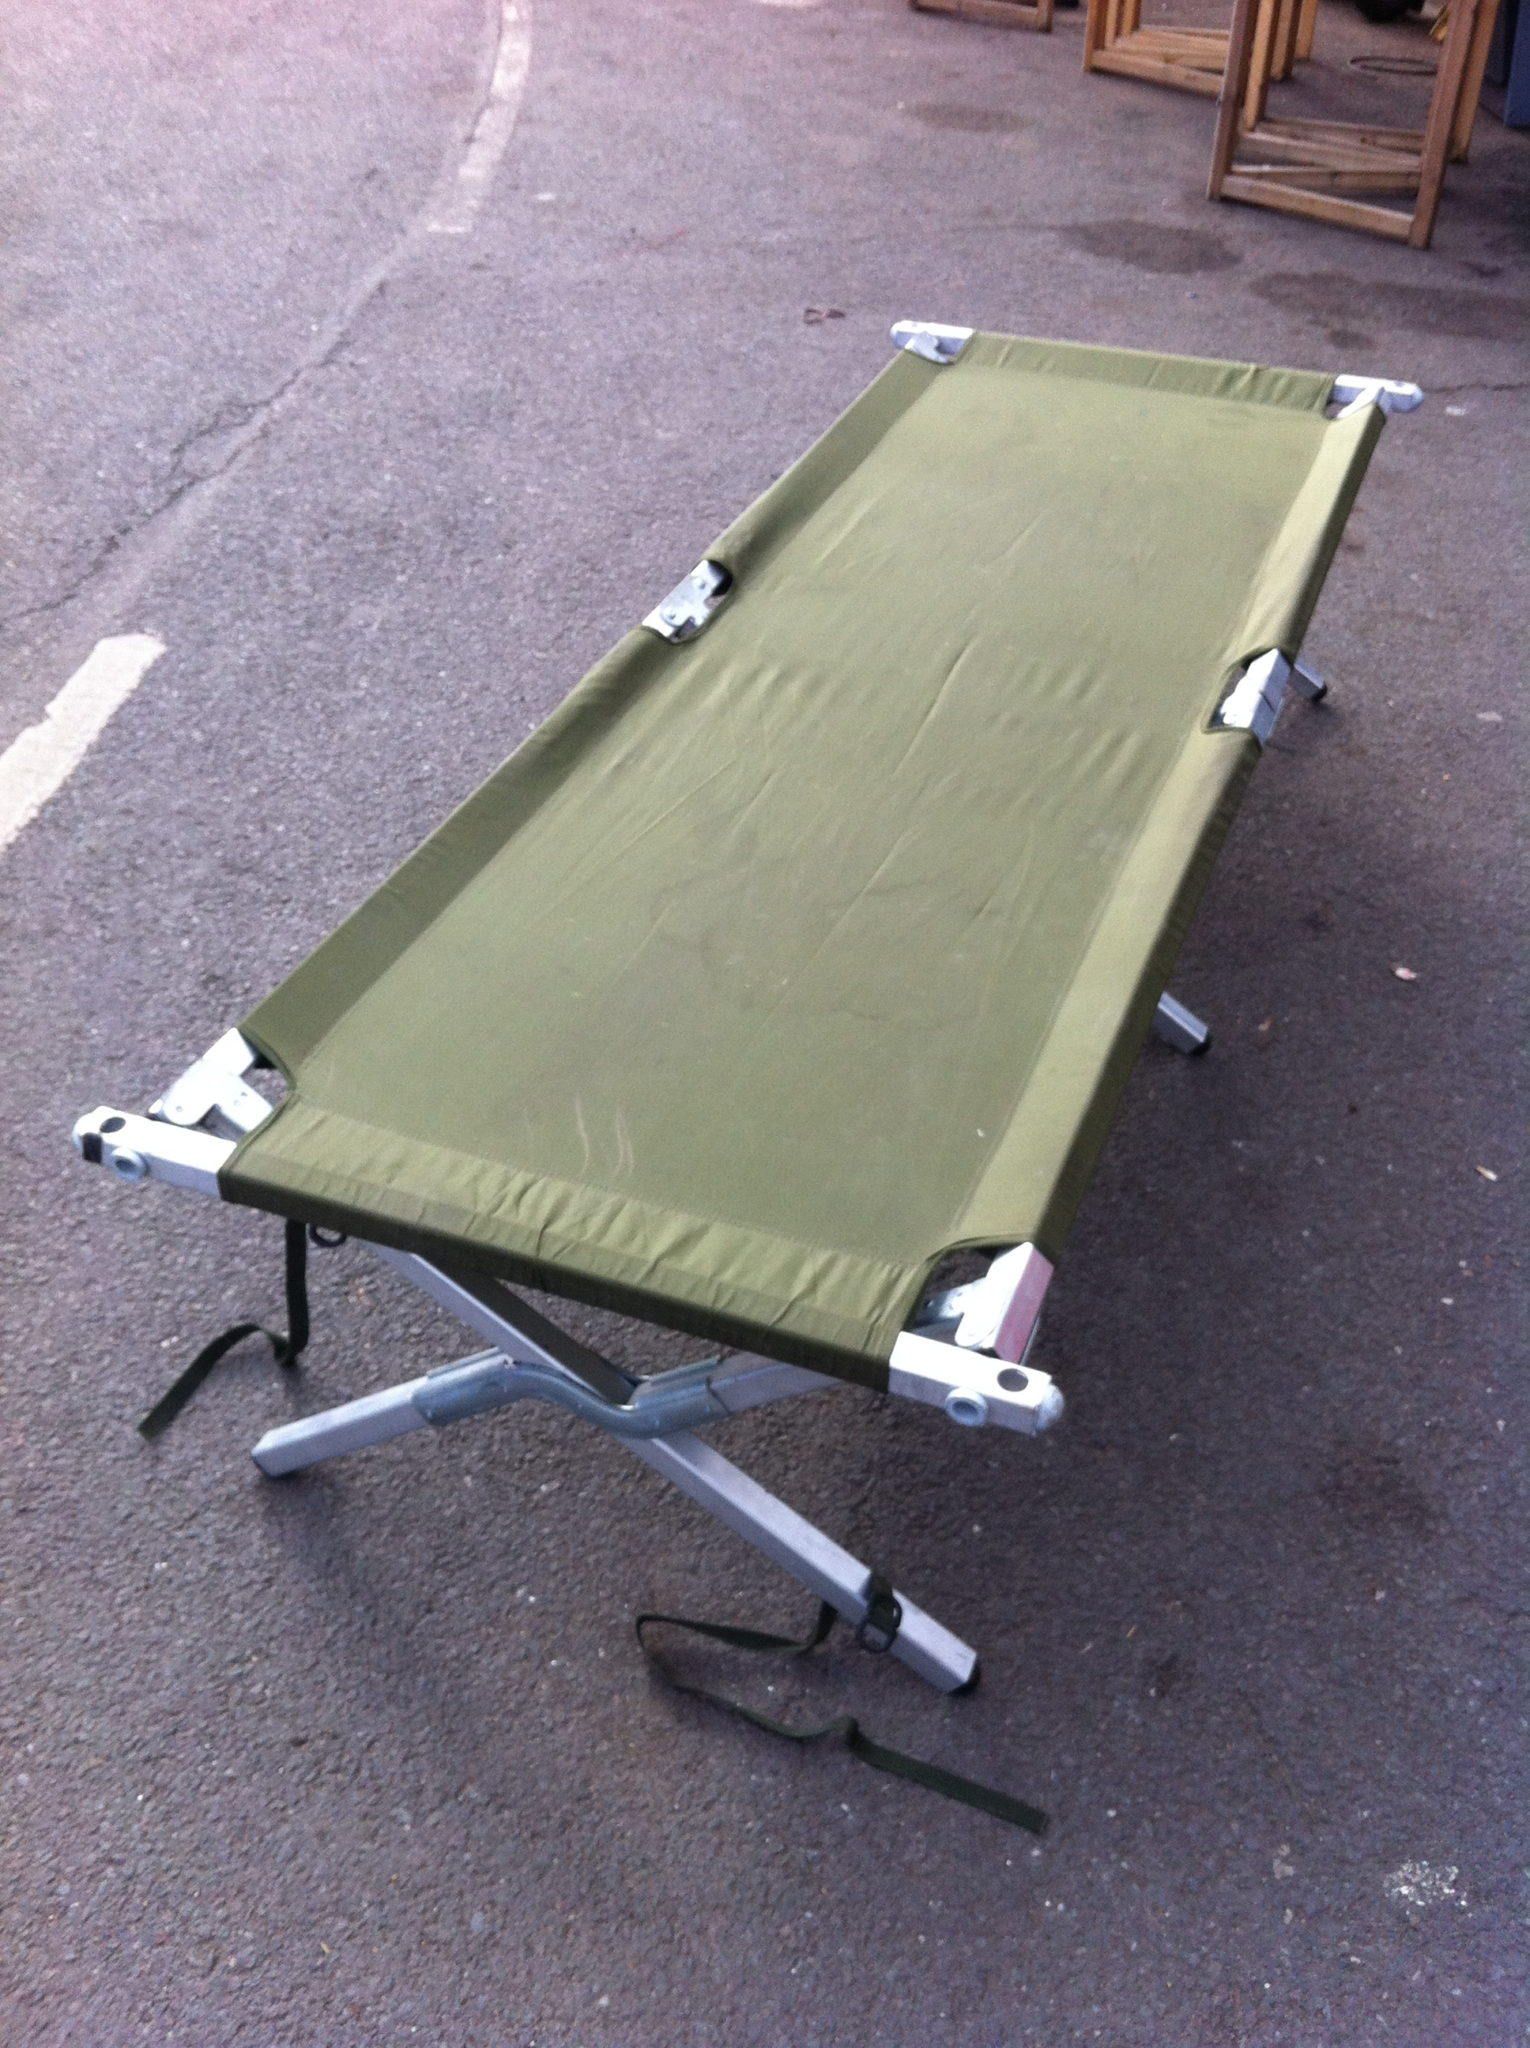 Folding Cot Bed 50 Available - Folding Cot Bed